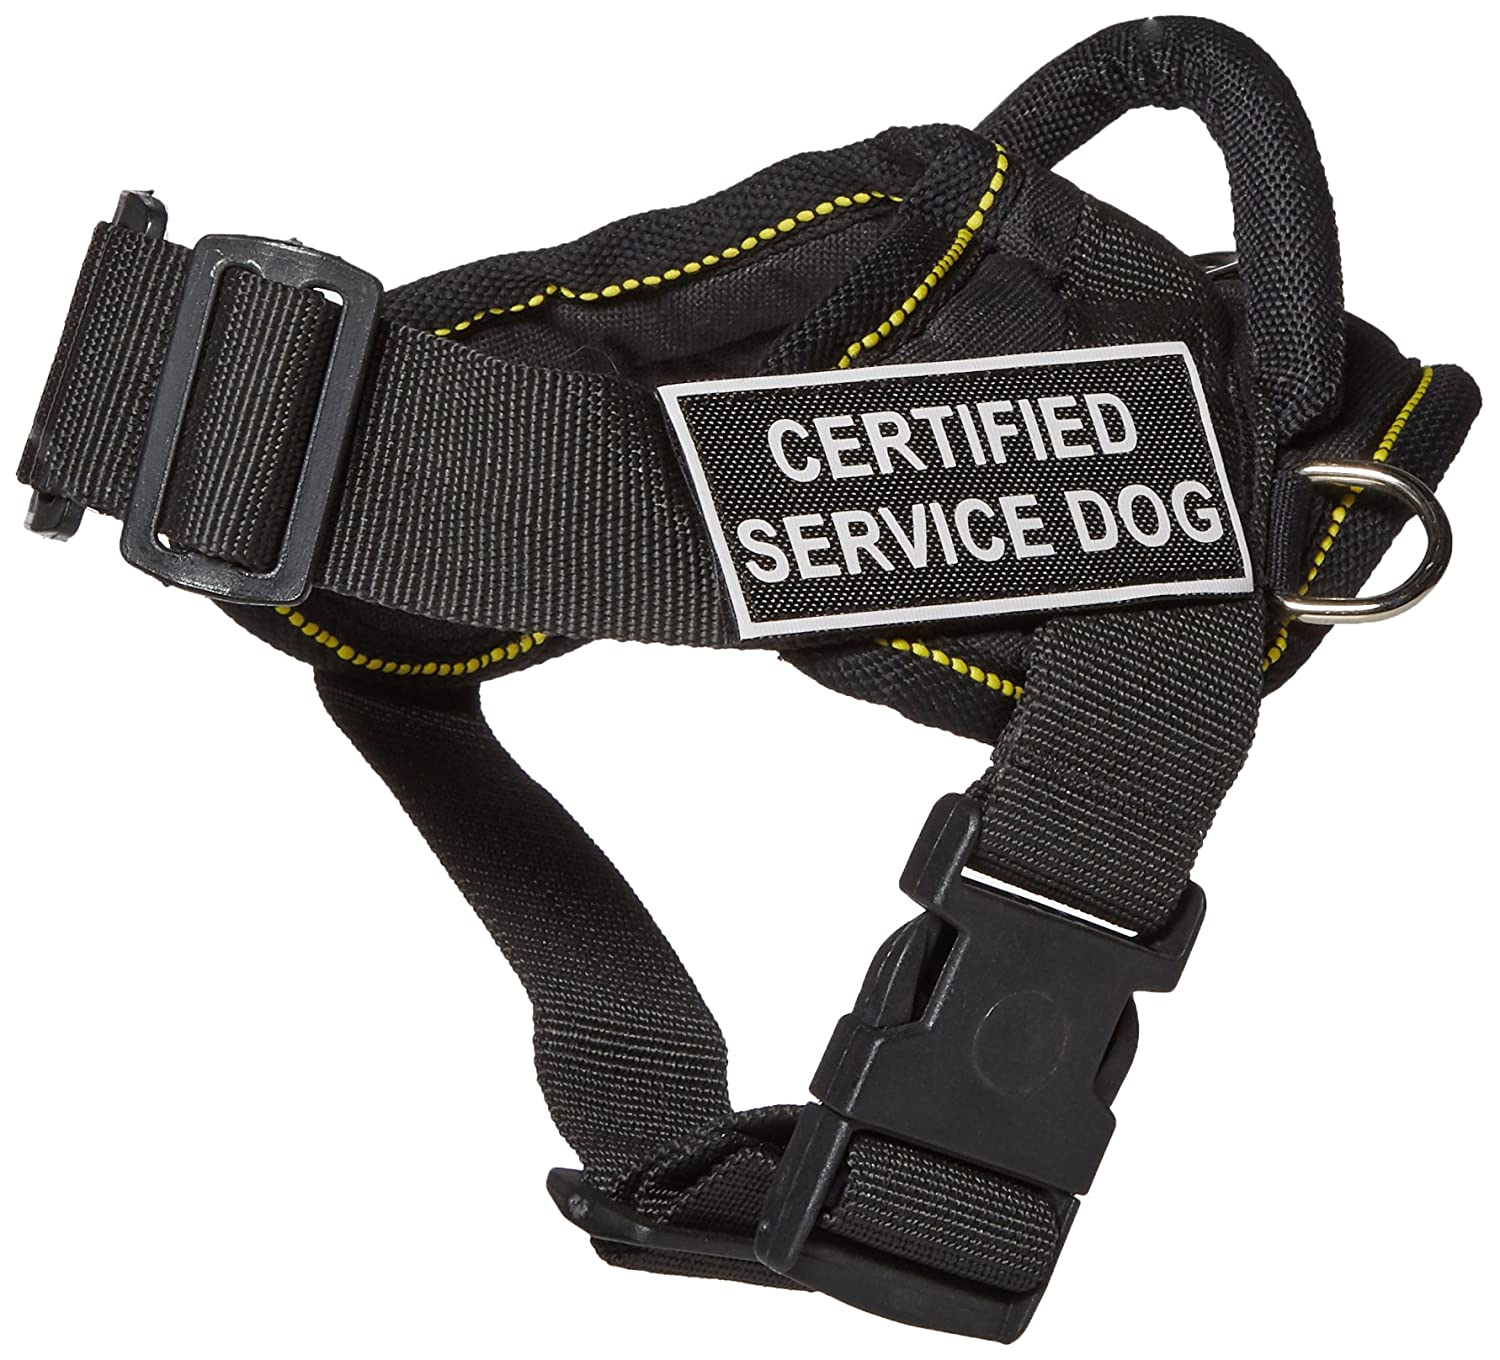 Dean & Tyler Fun Works Harness, Certified Service Dog, Black with Yellow Trim, X-Small, Fits Girth Size  20-Inch to 23-Inch